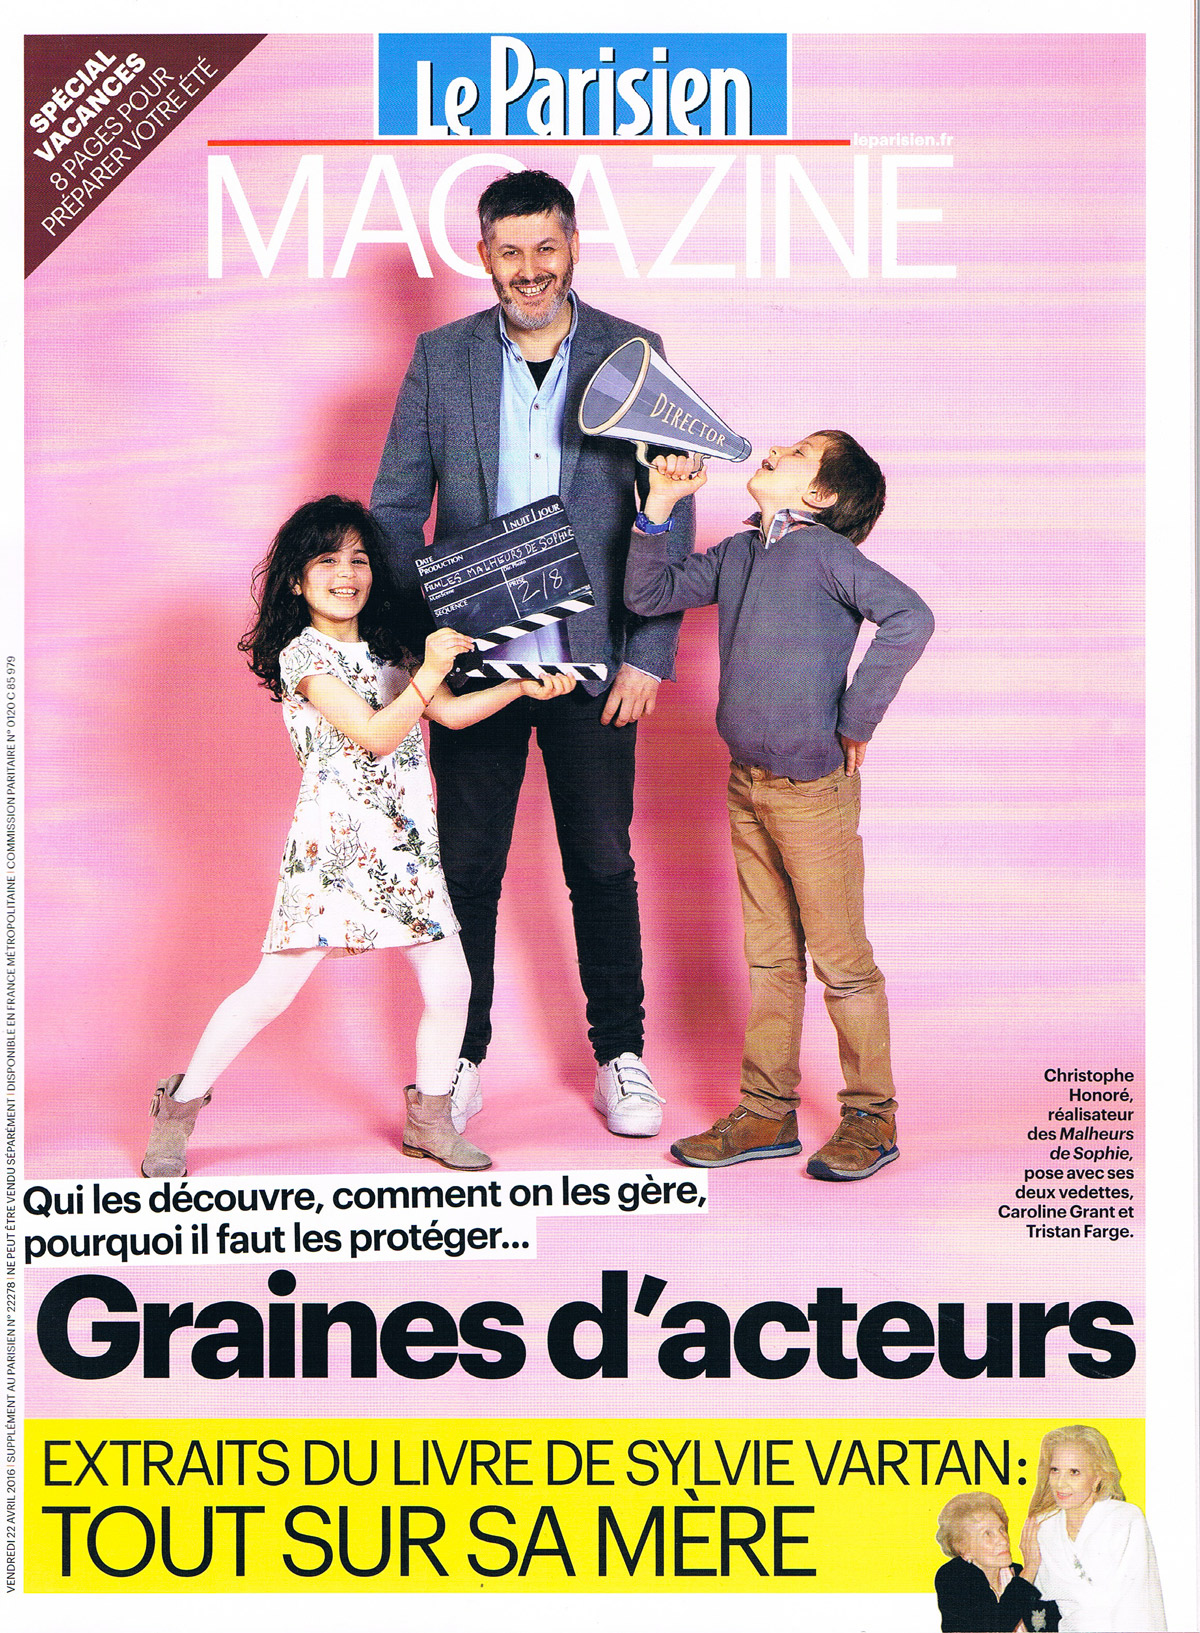 Le Parisien 22 Avril 2016